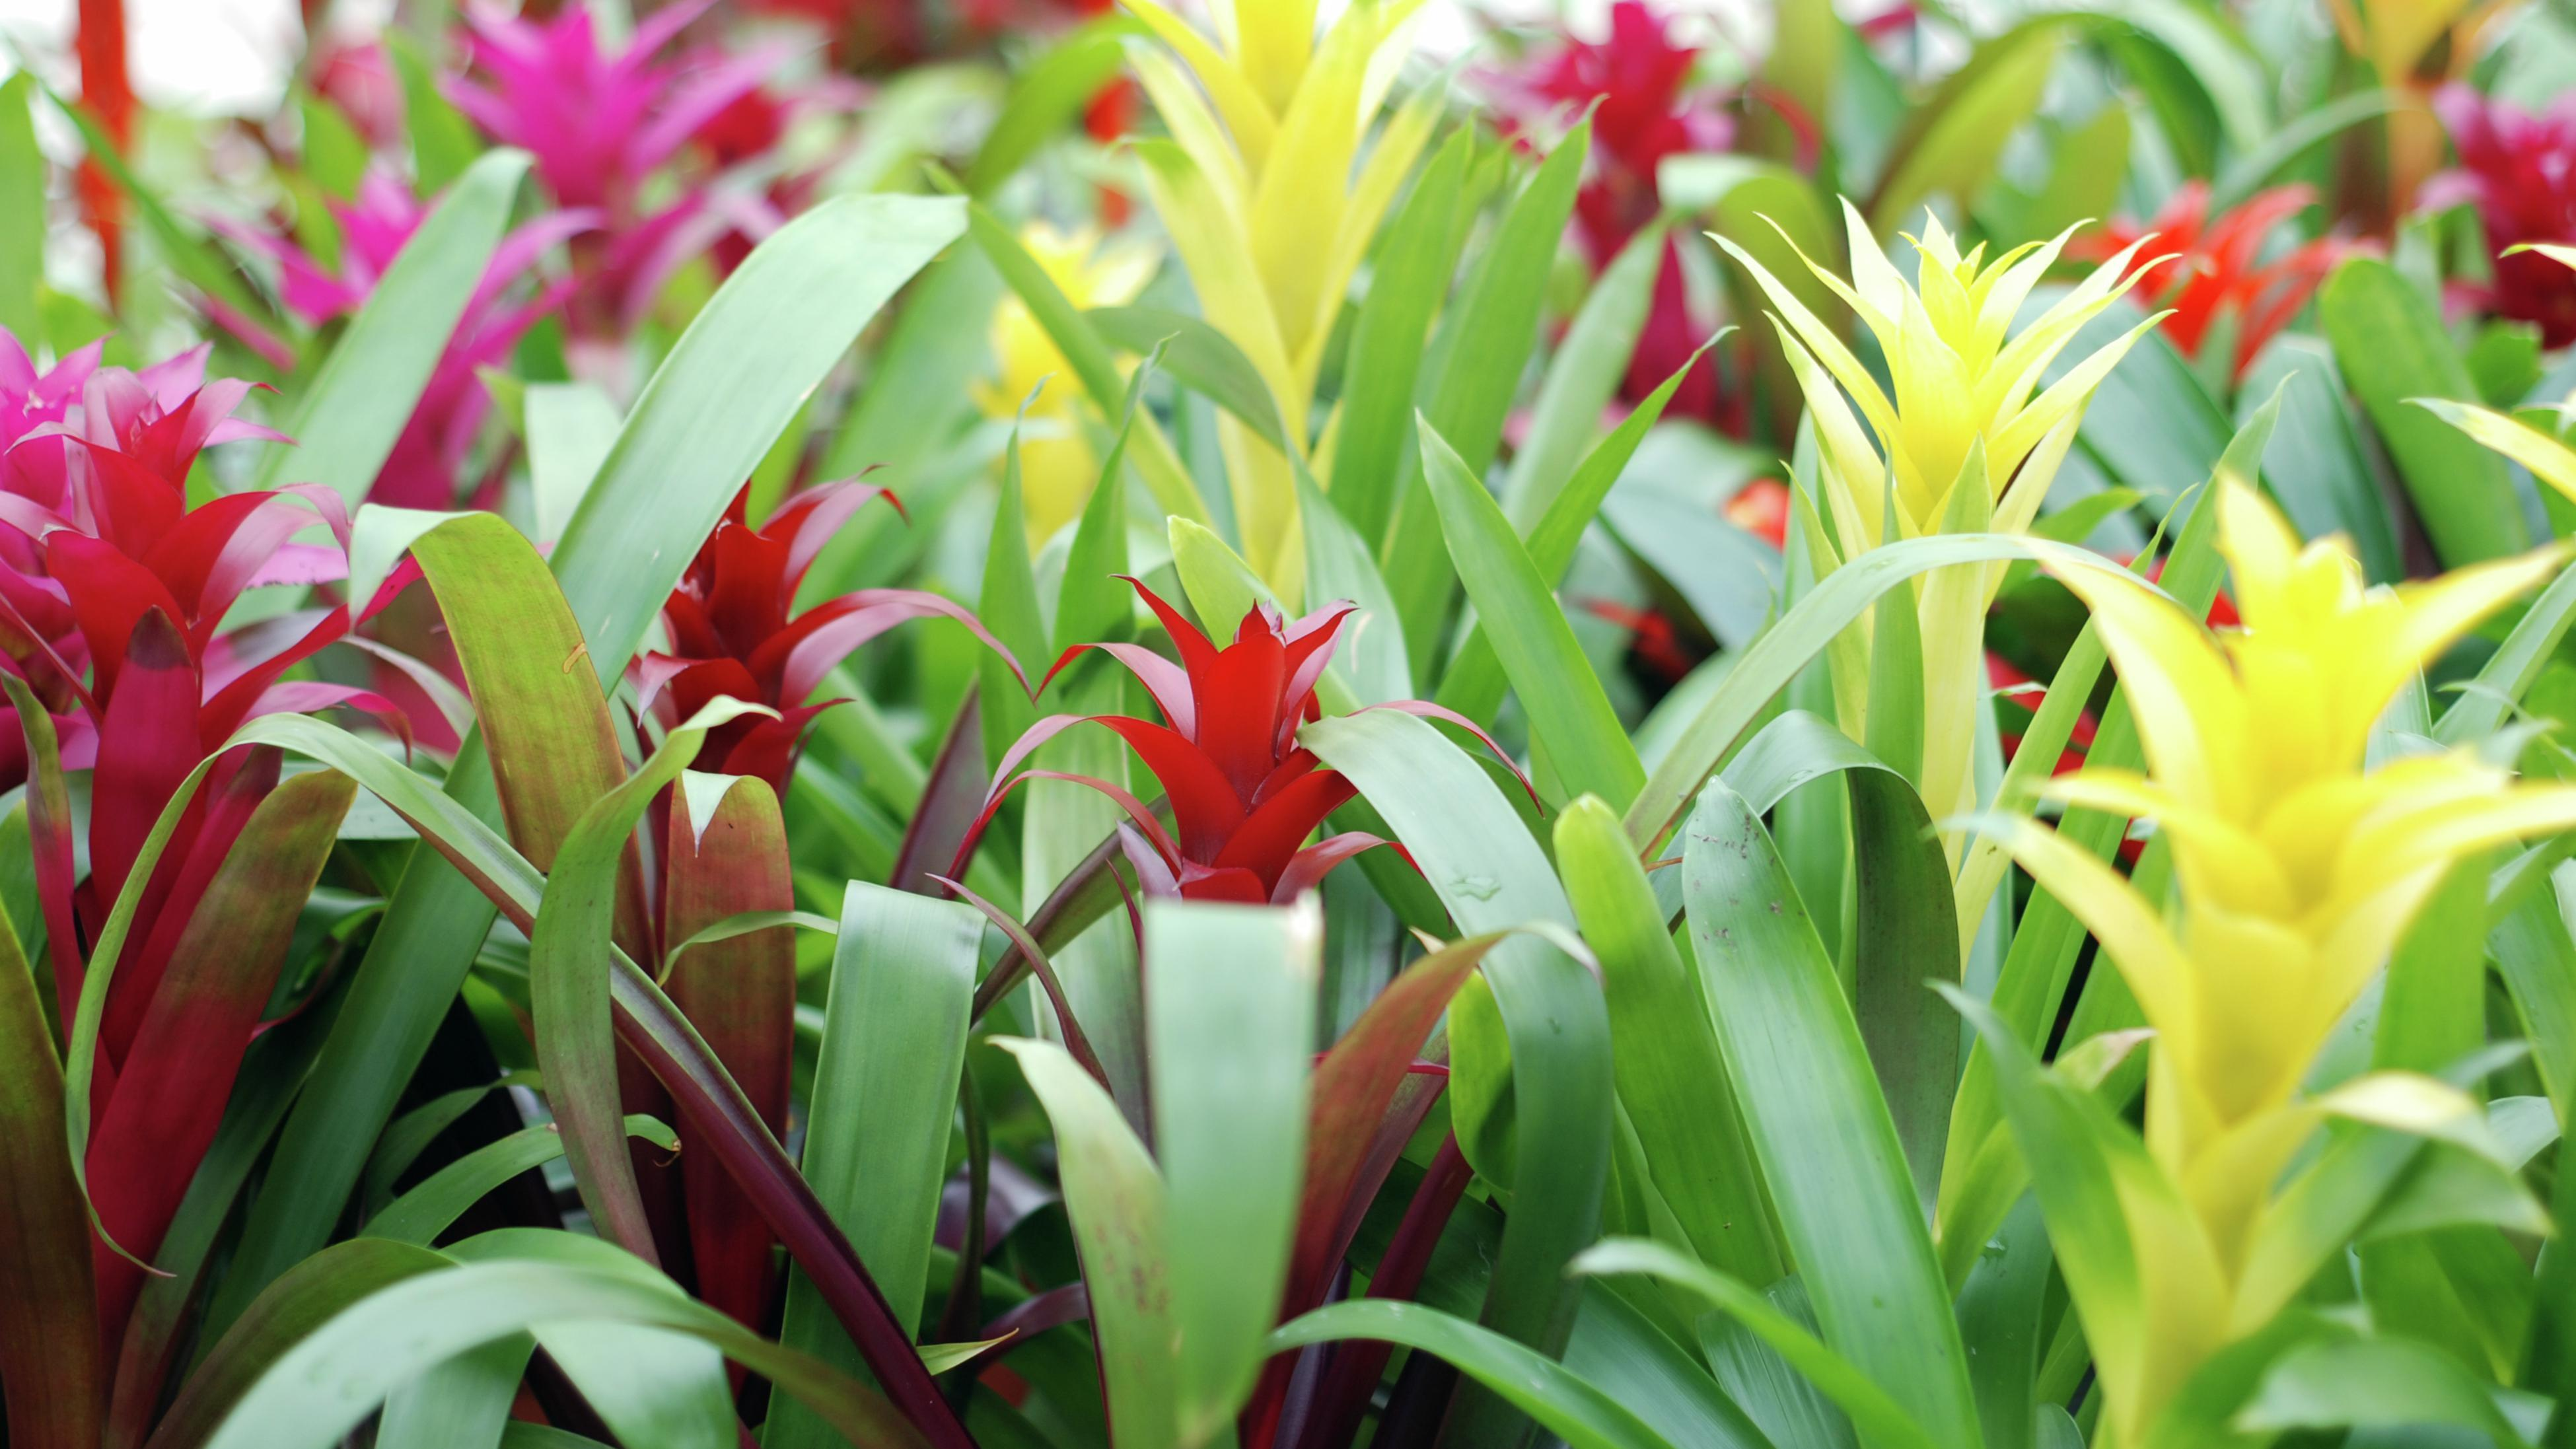 Brightly coloured bromeliads in reds, yellows and pinks.